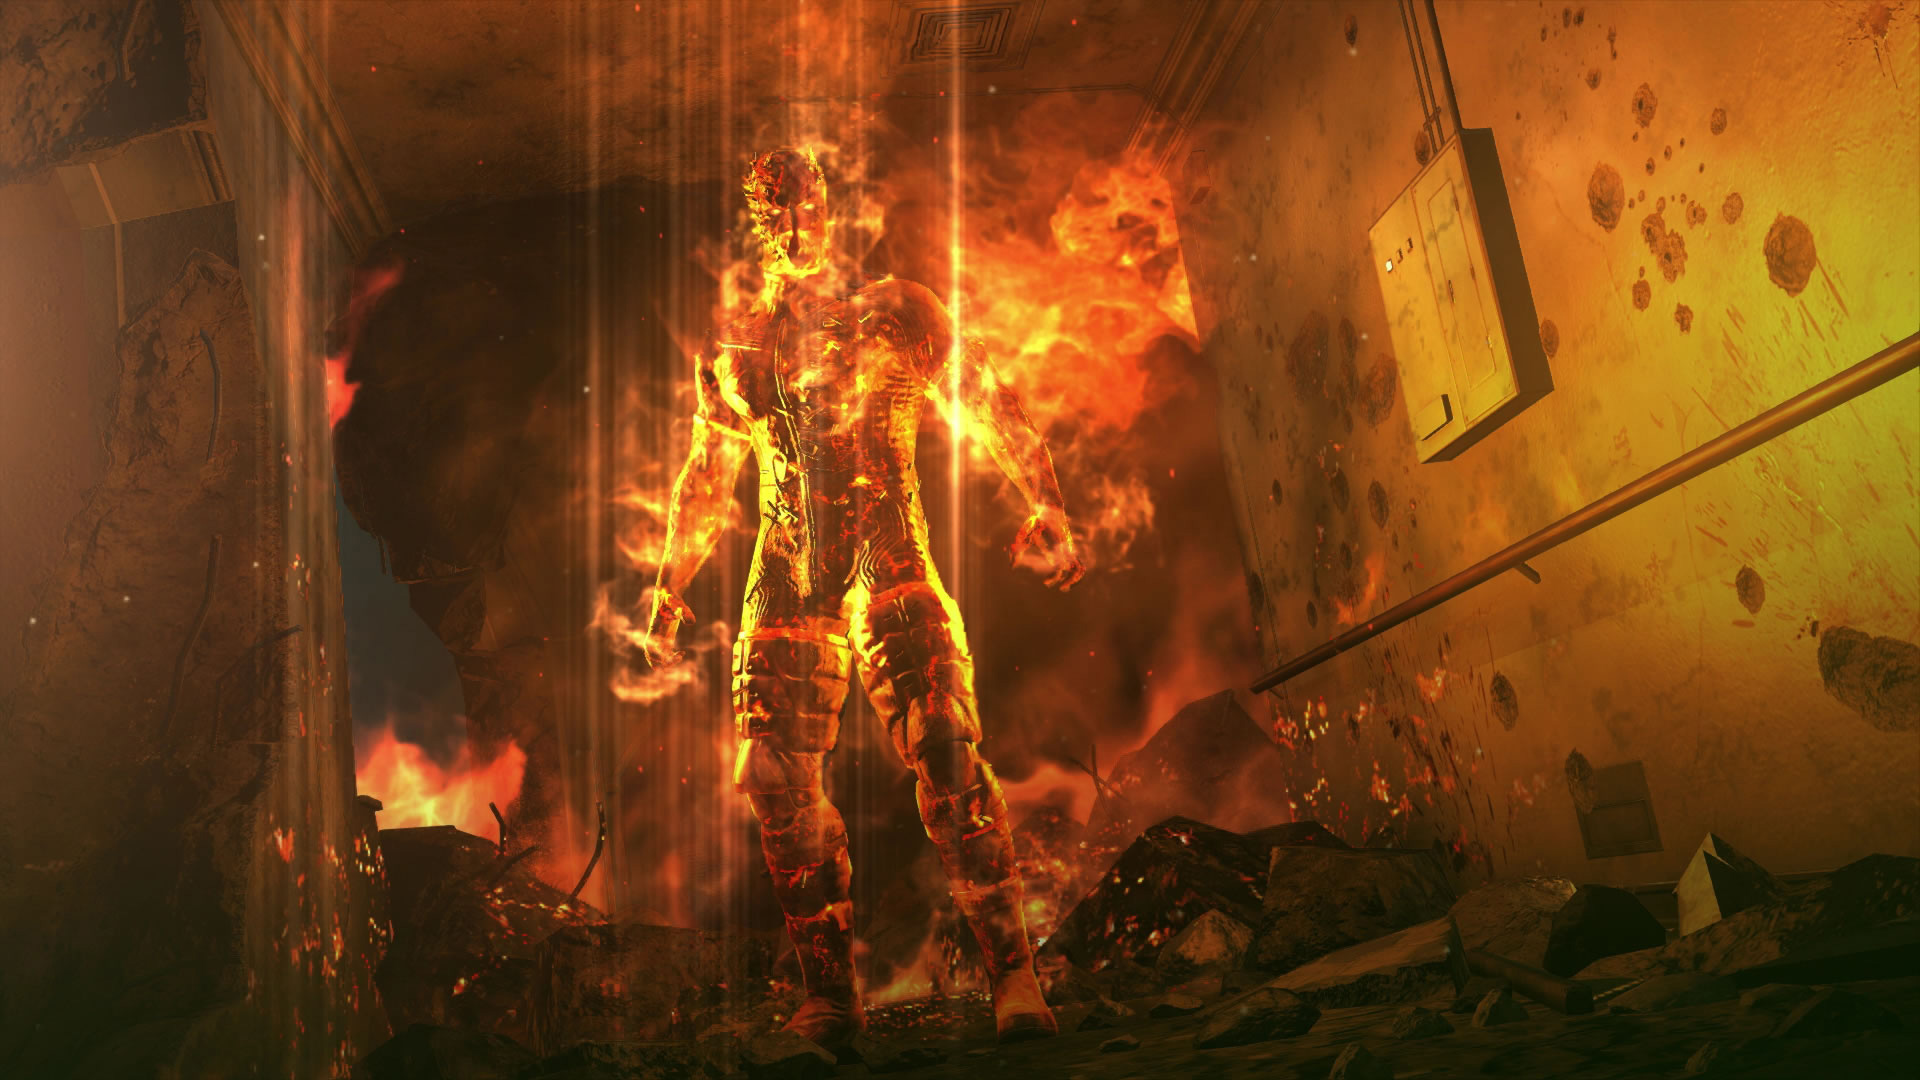 Metal-Gear-Solid-V-The-Phantom-Pain-E3-2015-Screen-Man-on-Fire